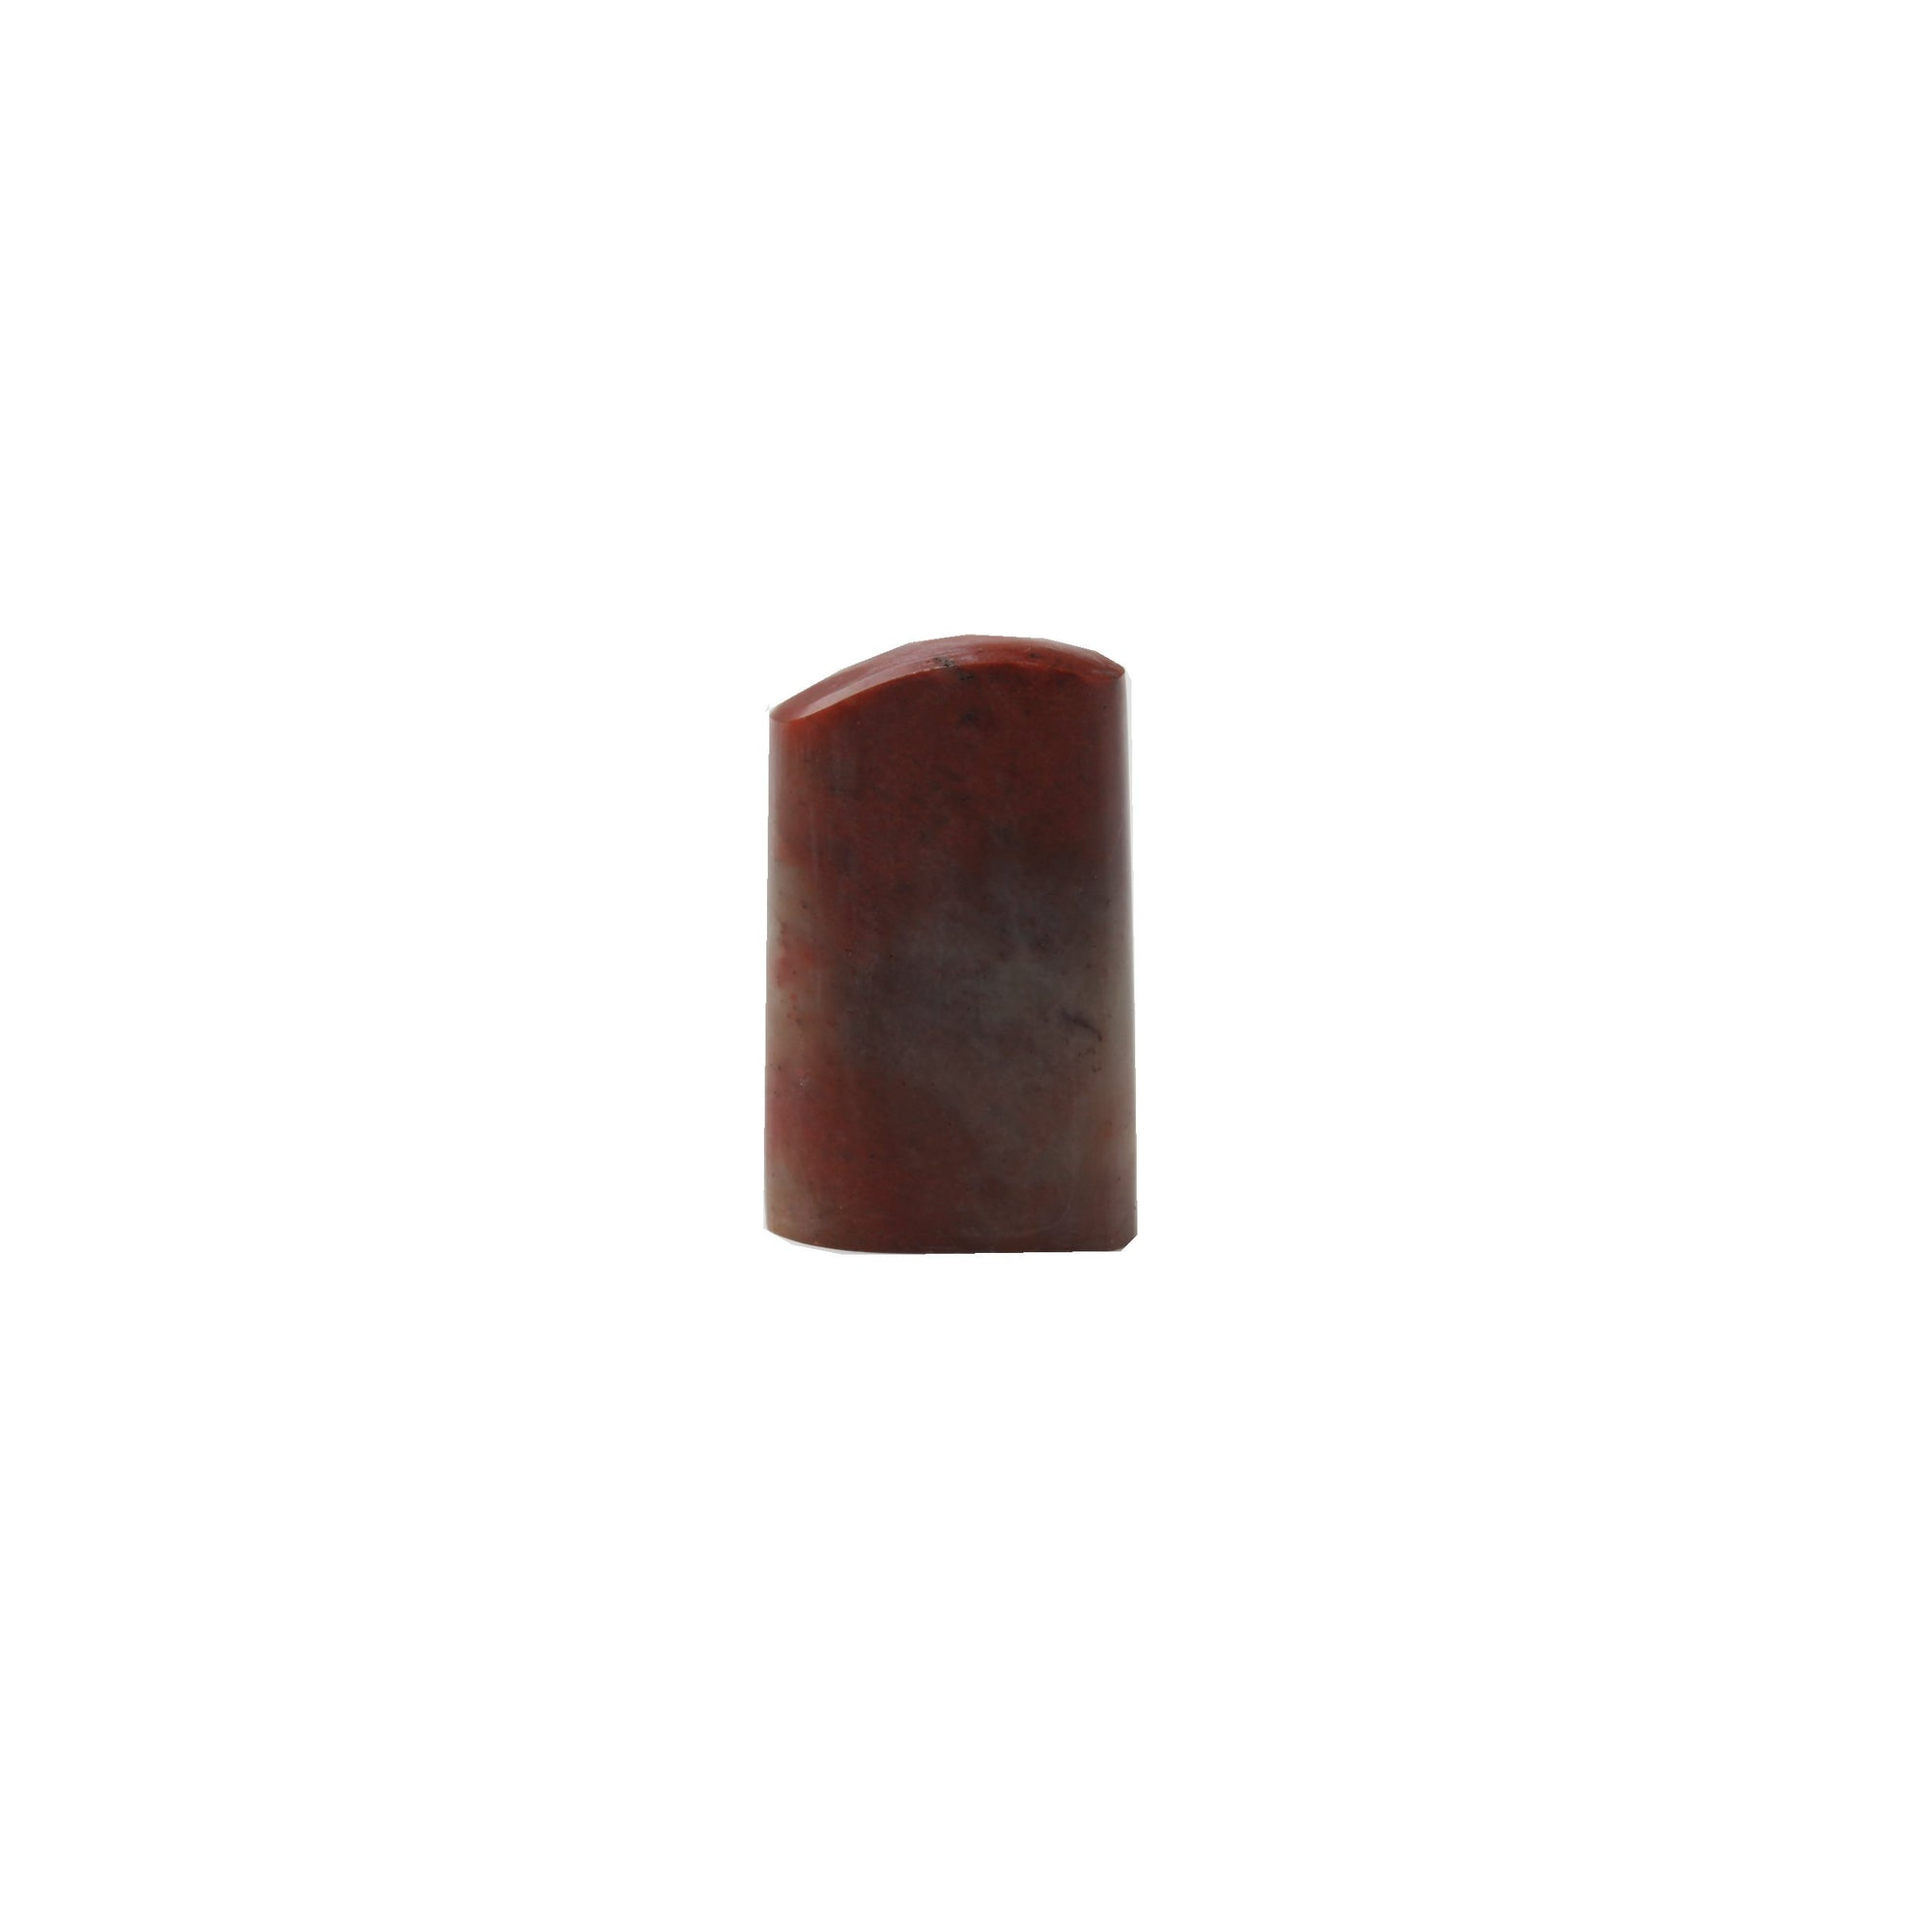 Dark Red EXCEART 5Pcs Chinese Seal Stamp DIY Handcrafts Chinese Seal Carving Chinese Chops for DIY Brush Calligraphy Sumie Painting Gongbi Fine Artworks